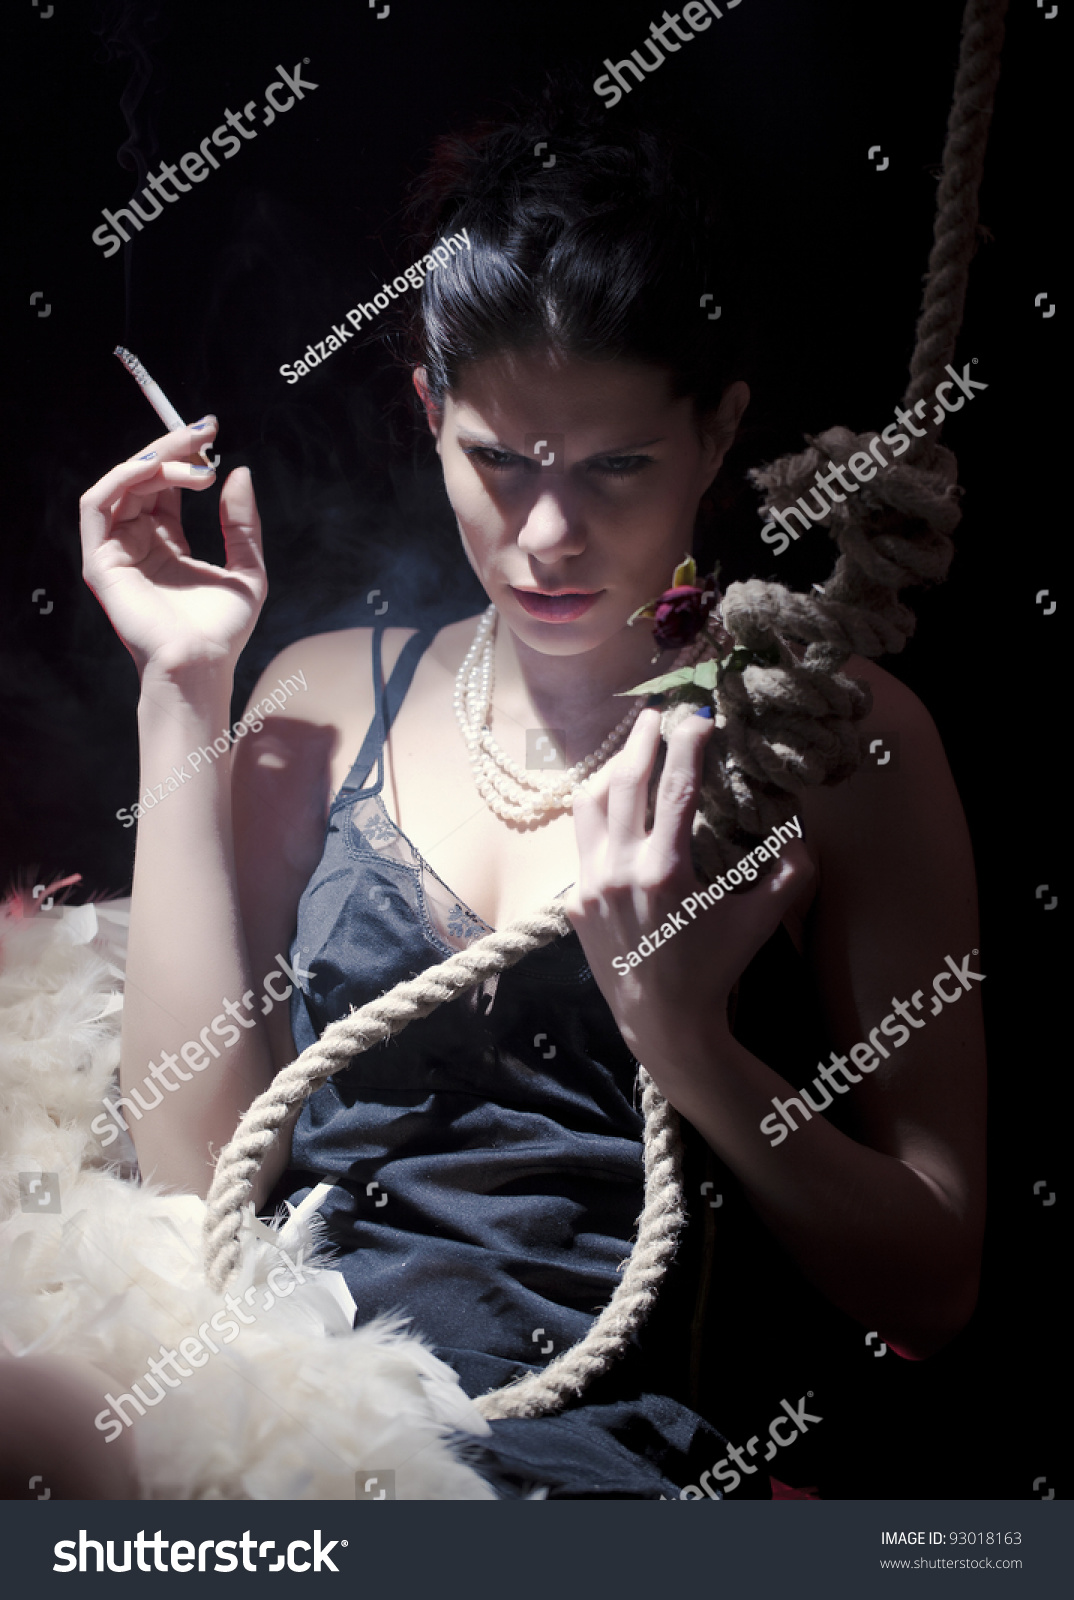 Roped and suicide girl